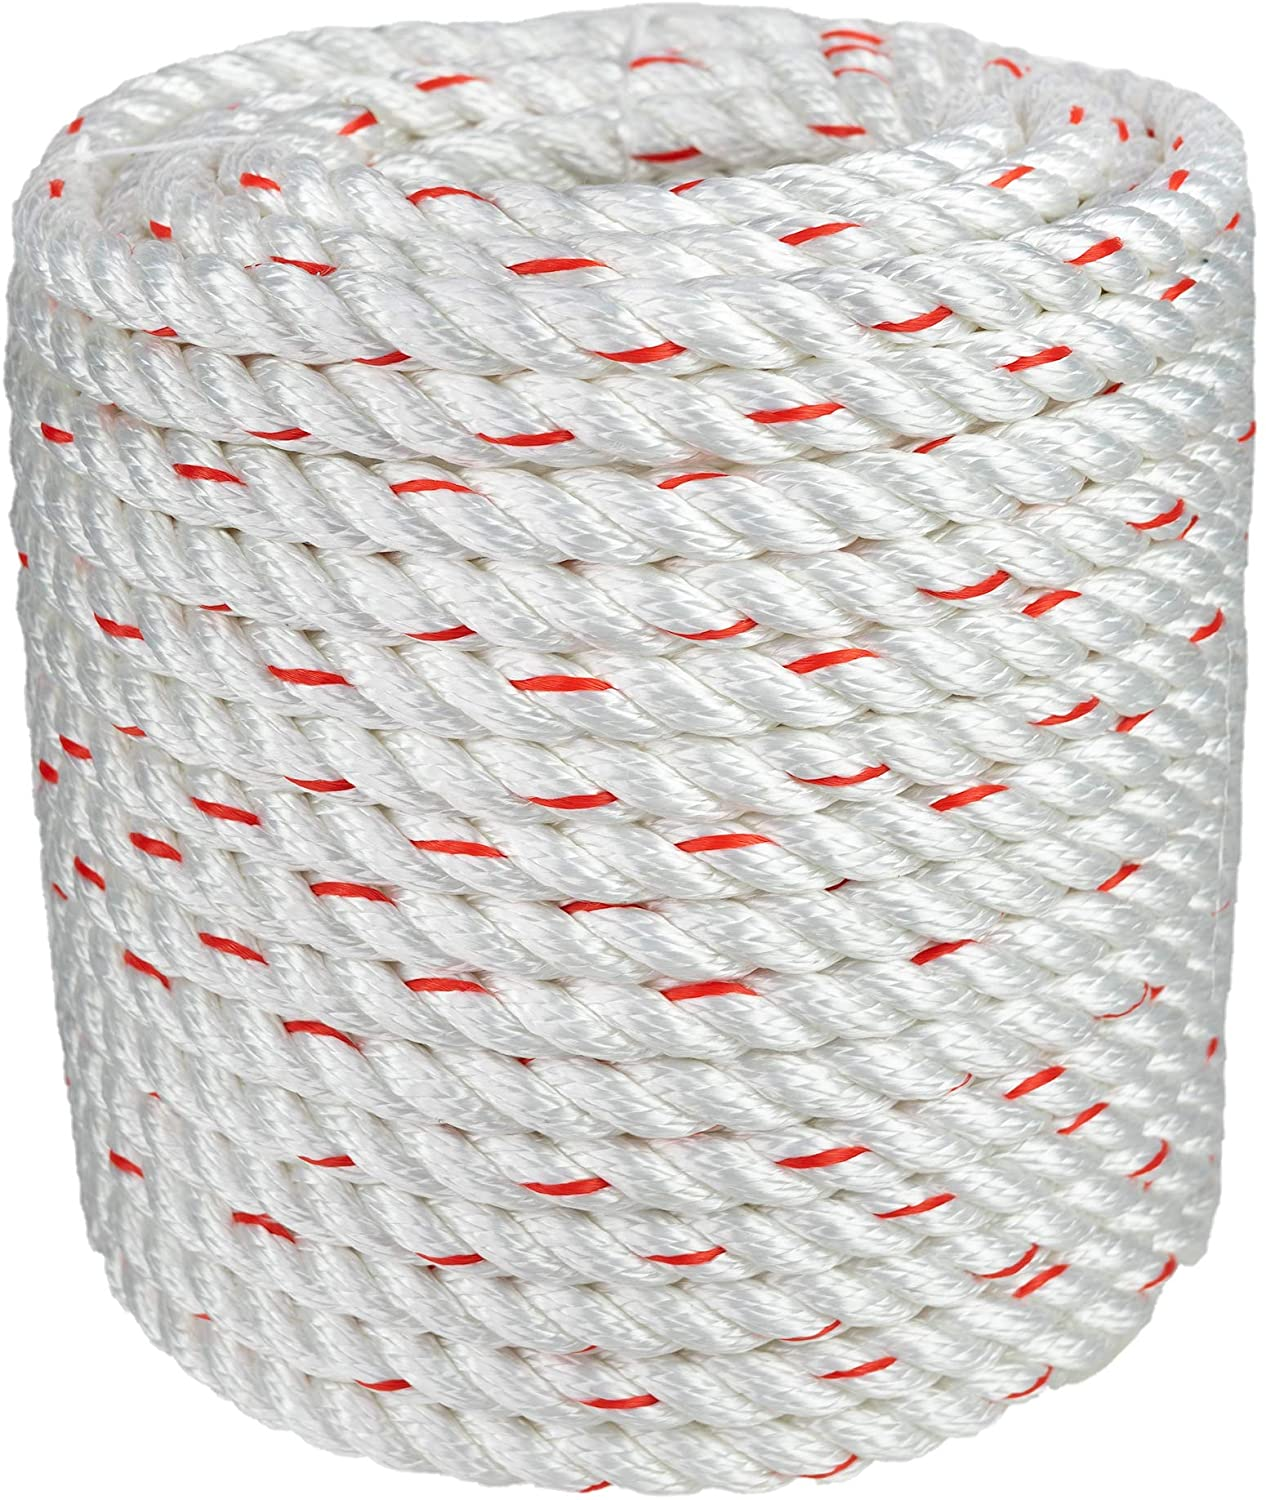 Arborist Bull Rope | High Strength Polyester | Tree Hoist Rigging Line | 1/2 inch x 150 feet